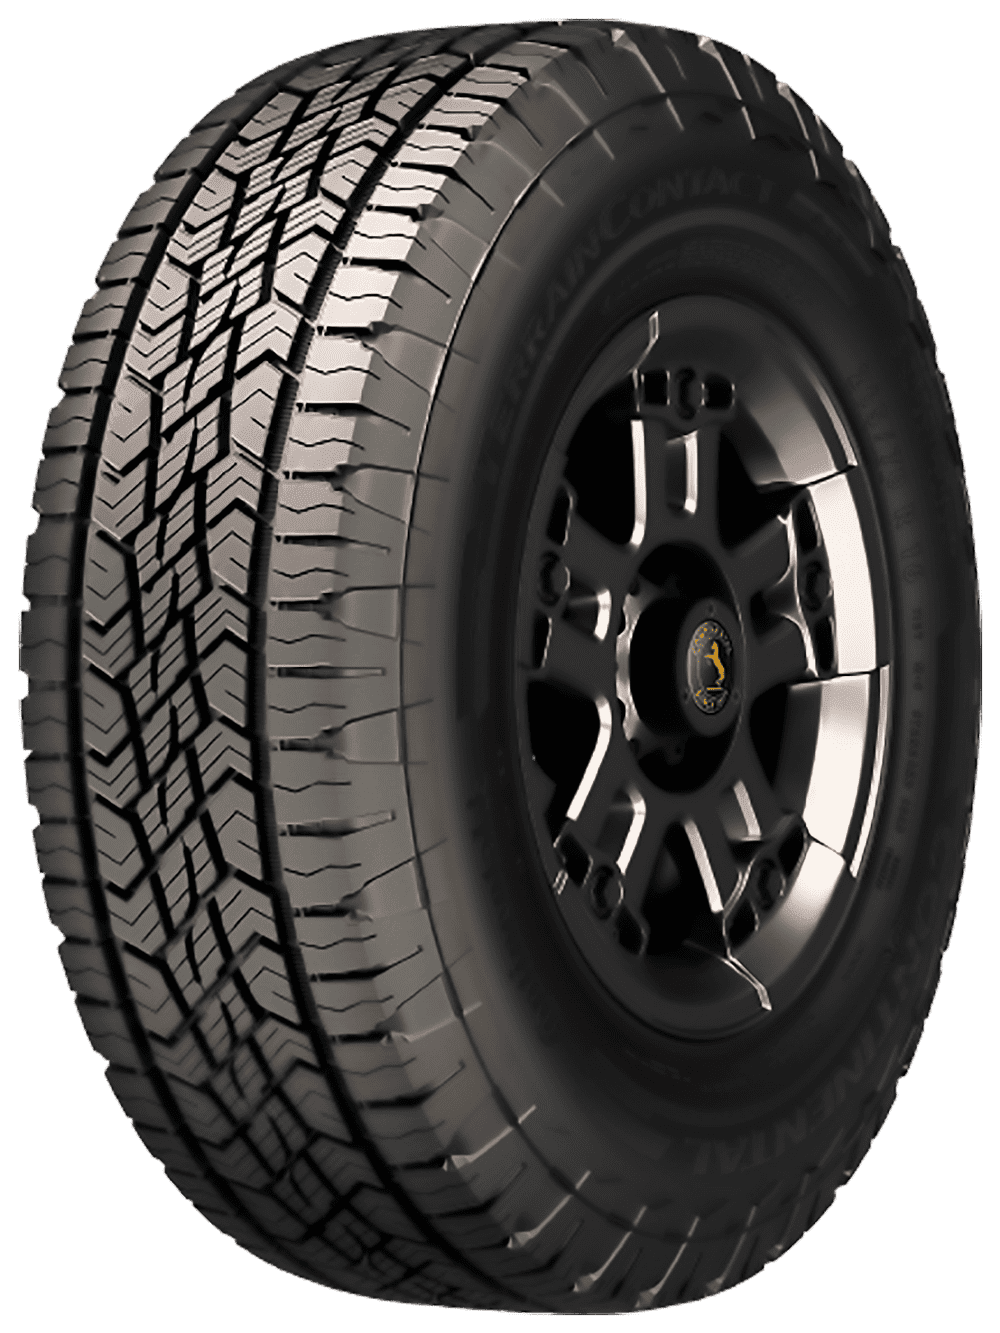 Continental Terrain Contact A/T Tire